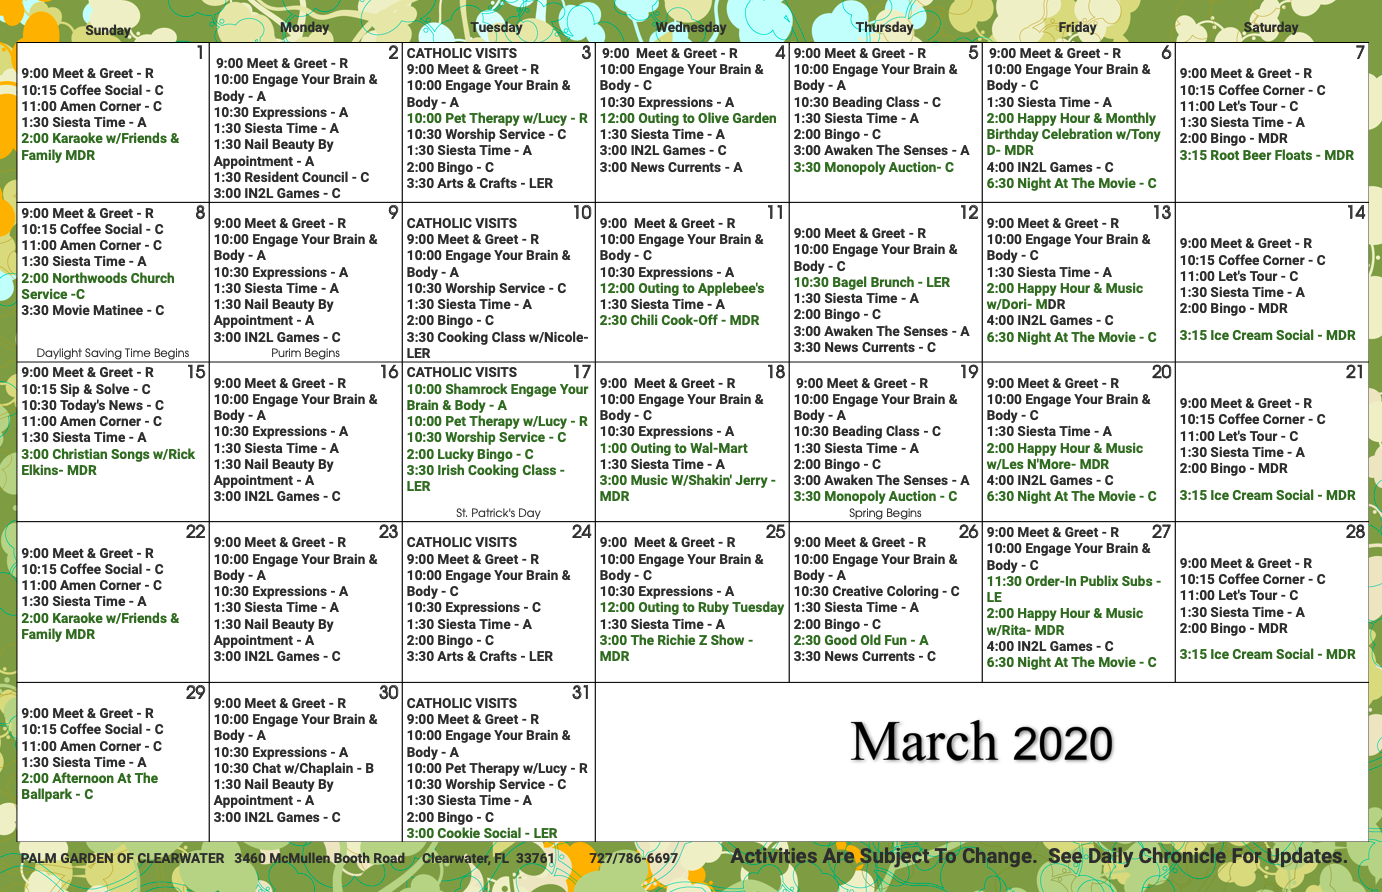 Clearwater March 2020 activity calendar